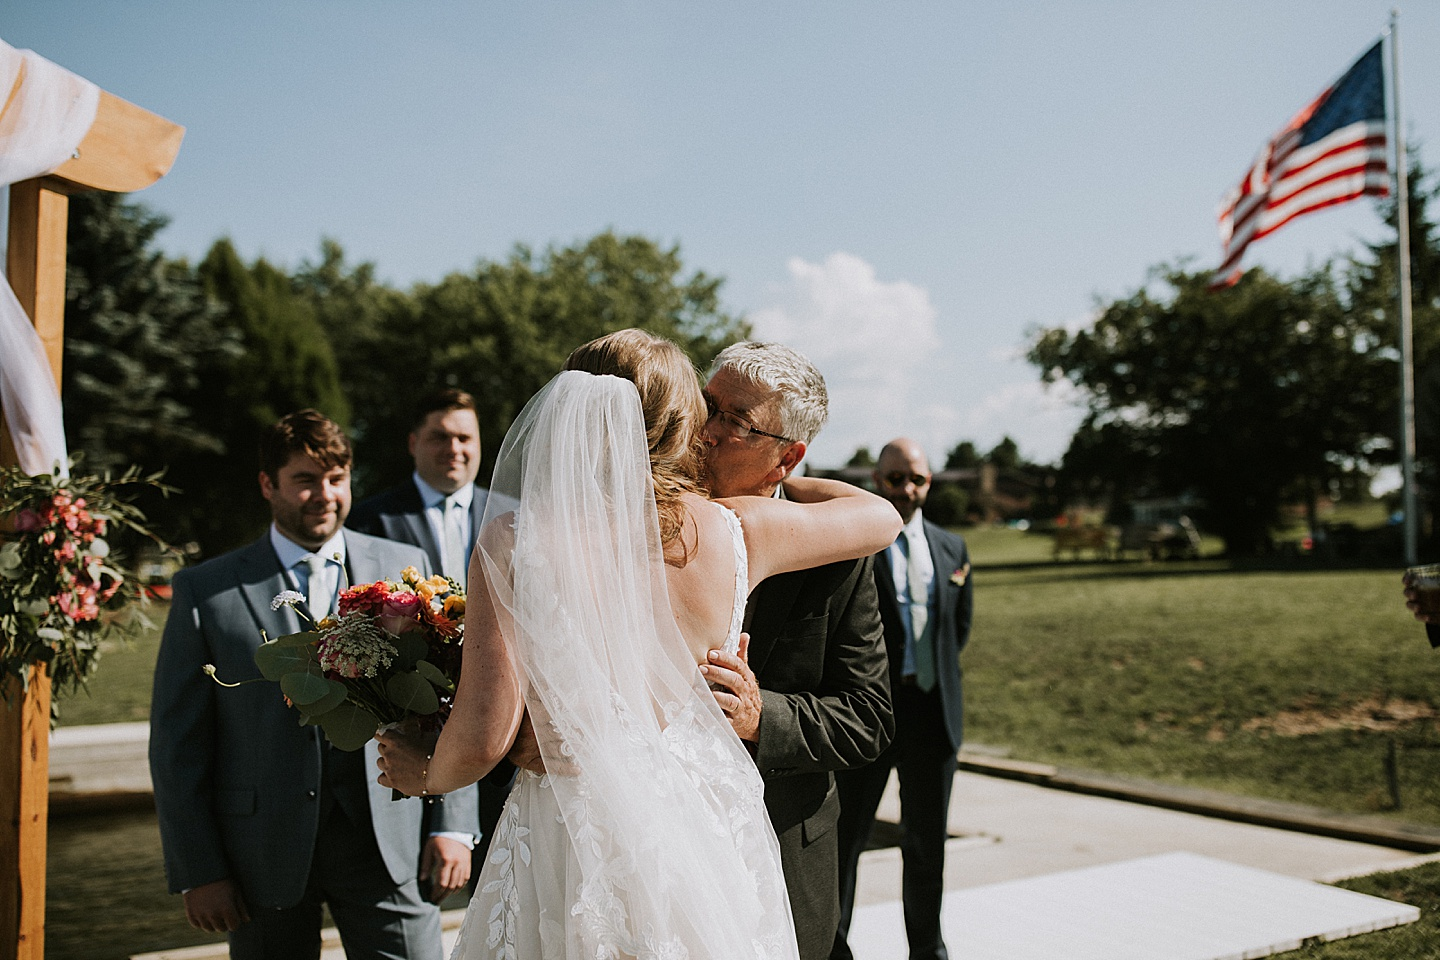 Fathering giving away daughter at wedding